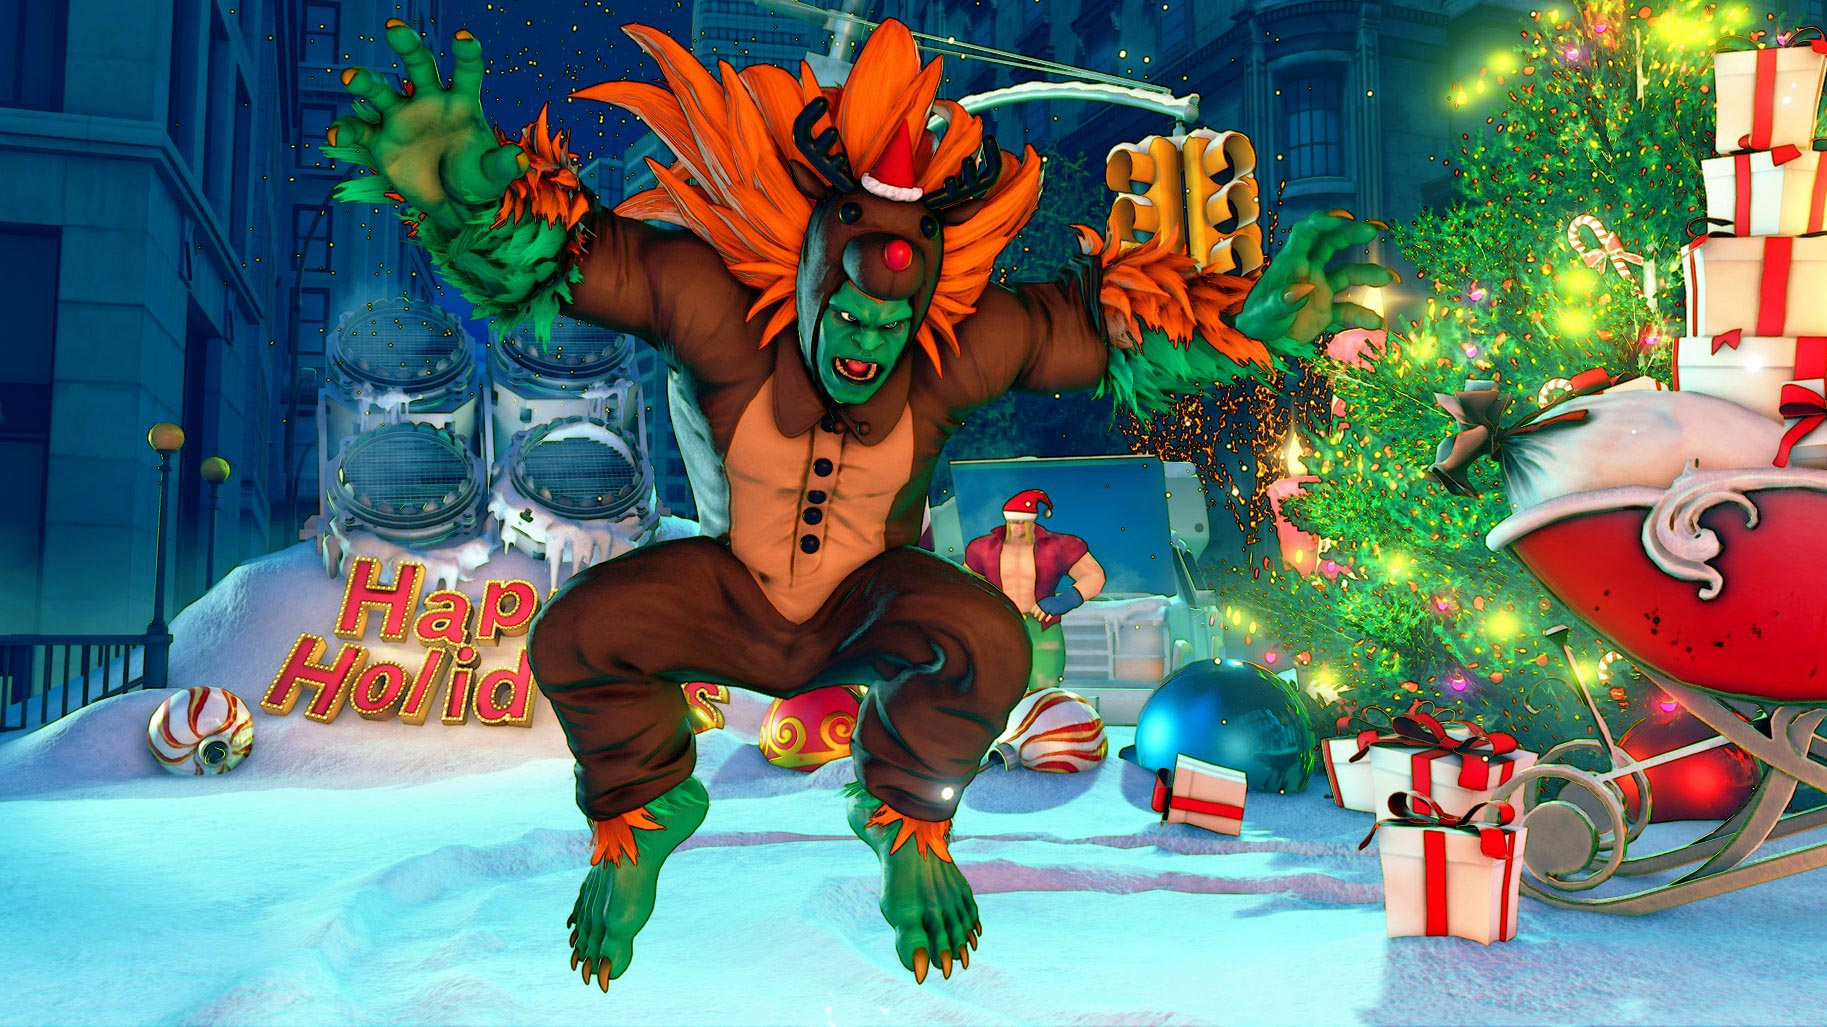 New Street Fighter 5 holiday costumes 5 out of 12 image gallery